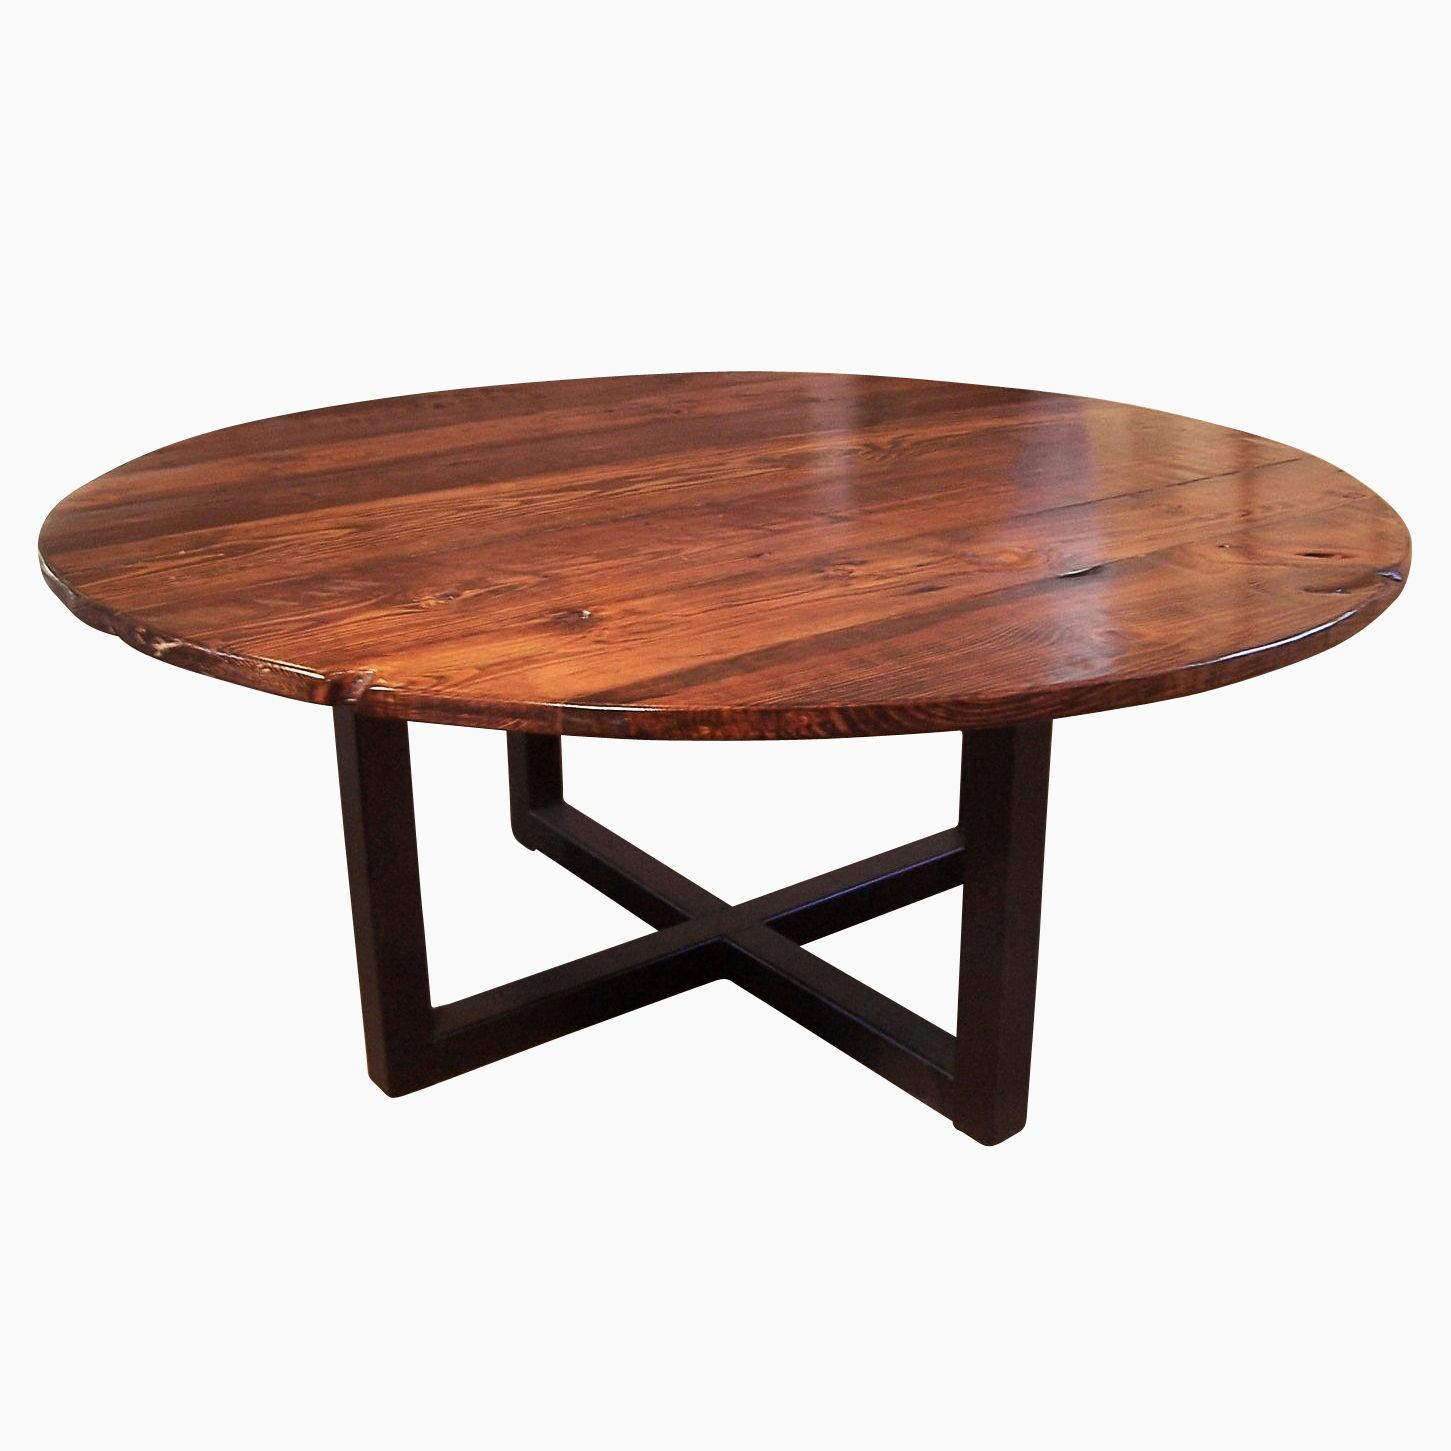 Industrial Unique Metal Designer Coffee Table: Buy A Hand Crafted Large Round Coffee Table With